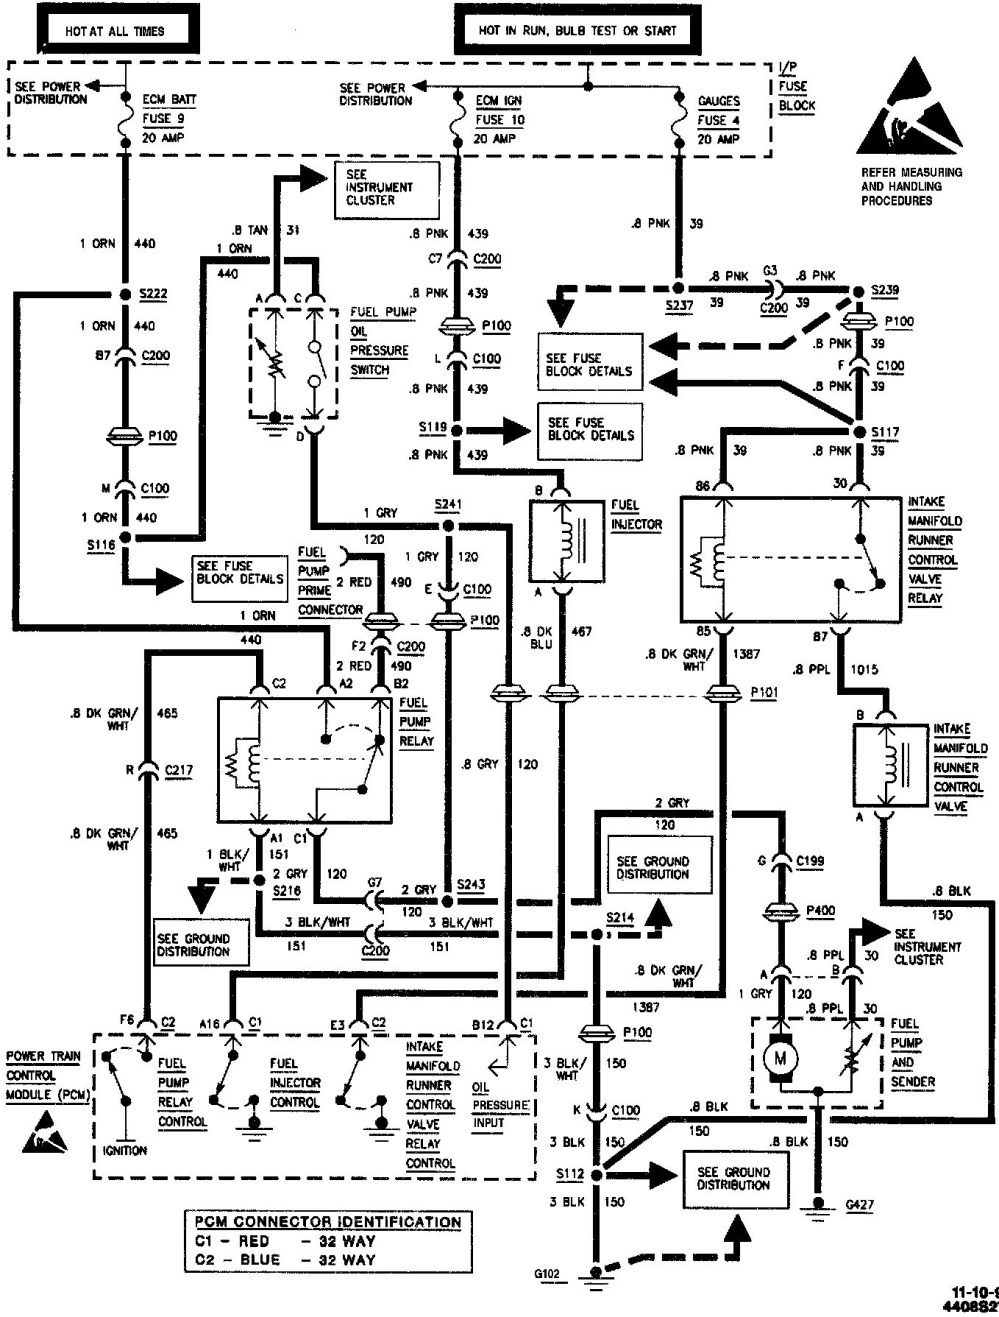 medium resolution of fuel gauge wiring diagram 97 silverado wiring diagram show 85 s10 fuel gauge wiring diagram